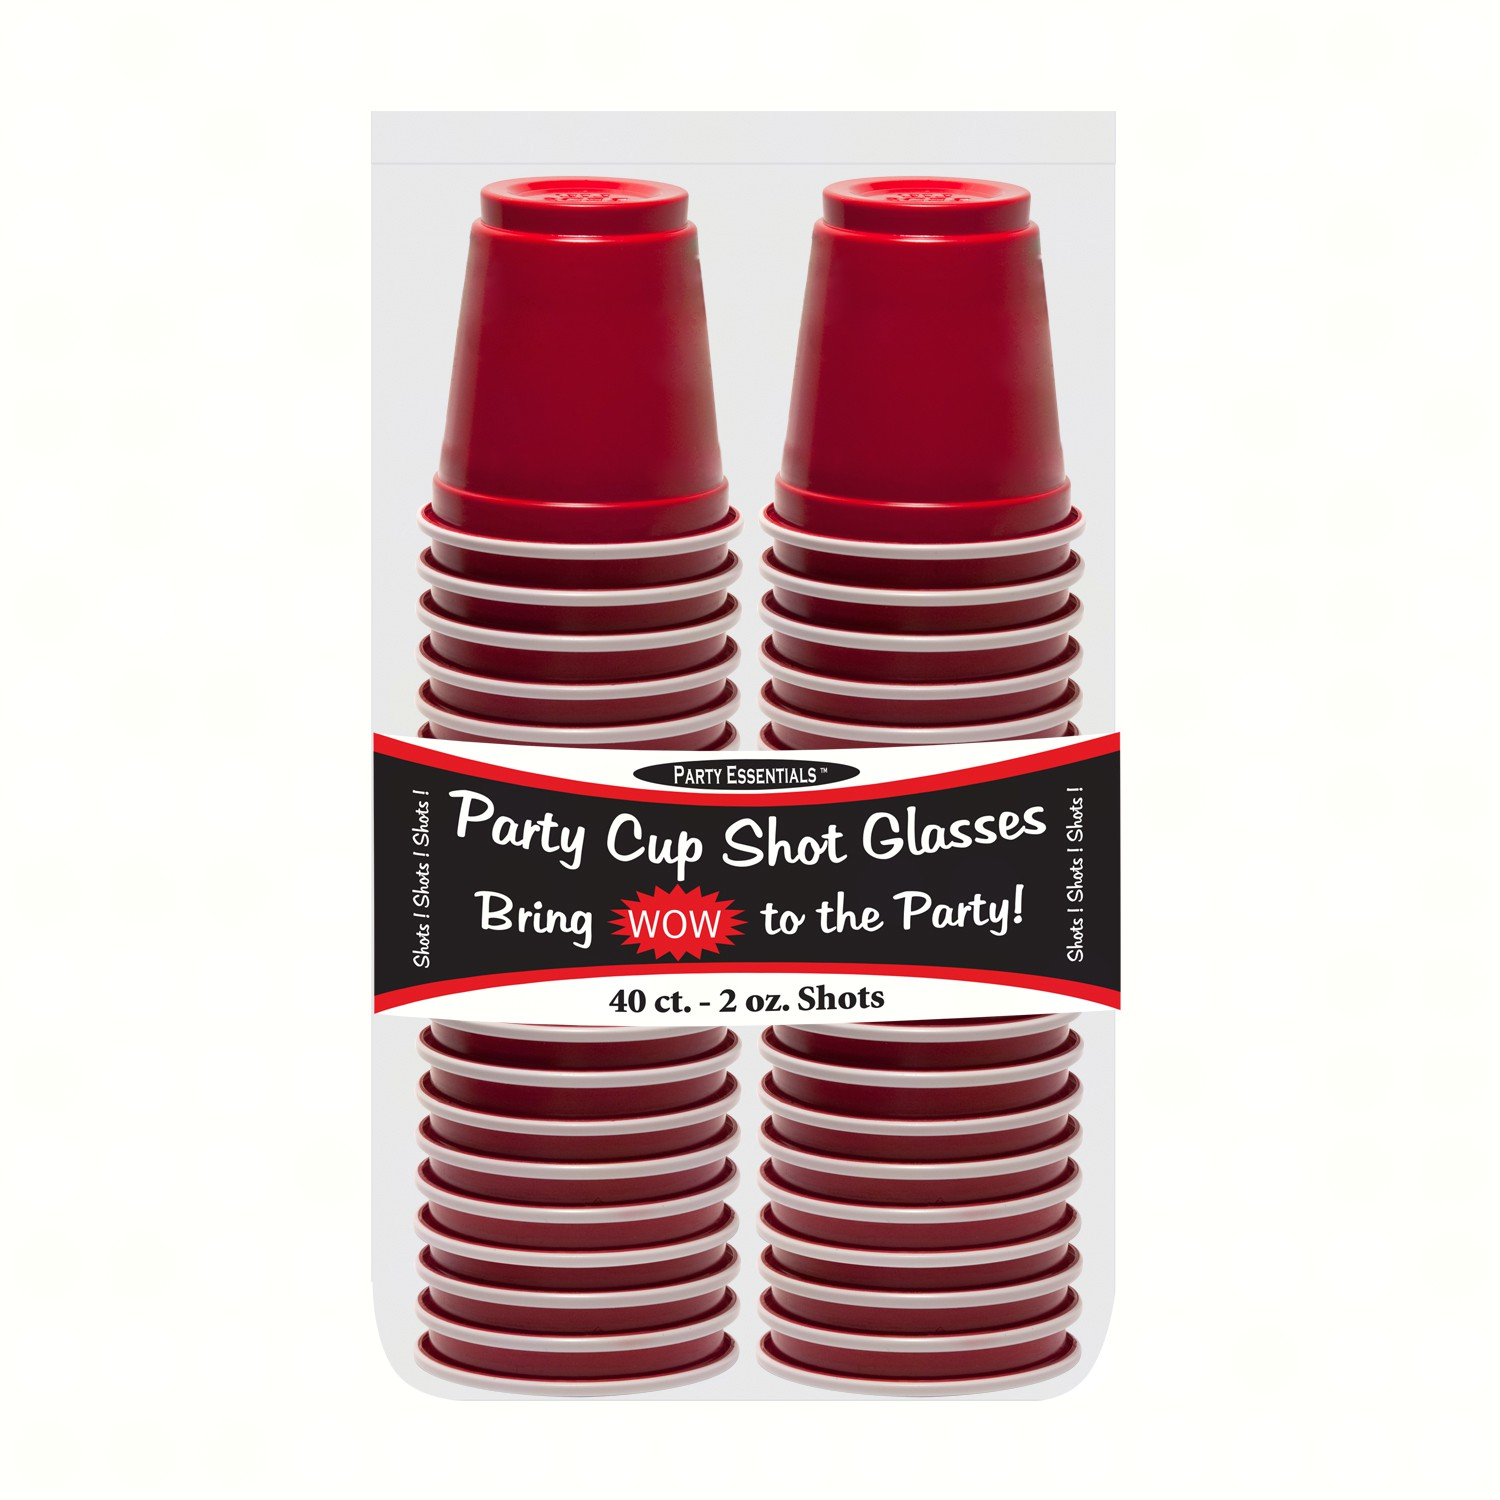 2 oz Red Party Shots